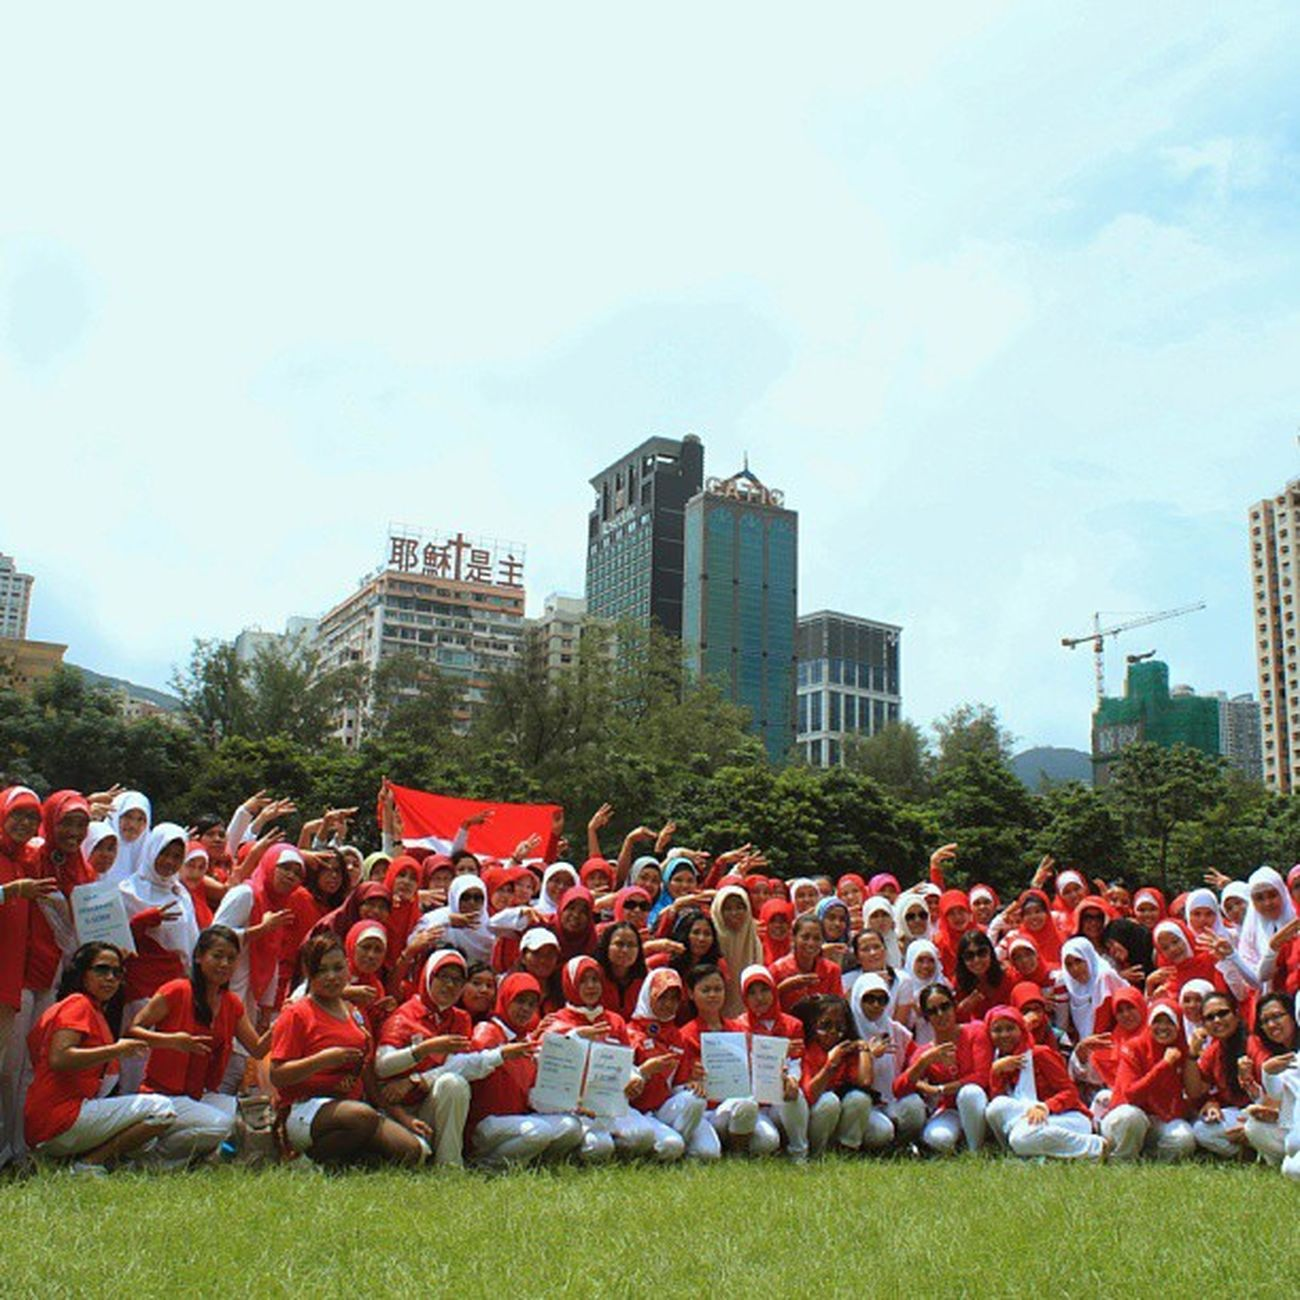 Declaration International Entrepreneurship Day By Indonesian Domestic helper in Hong Kong (Deklarasi hari E-SDMI Entrepreneurship Sumber Daya Migran Indonesia do Victoria Park,Hong Kong) Reallifehk @reallifehk Localiiz Entrepreneur Bmihk indonesia Hongkong